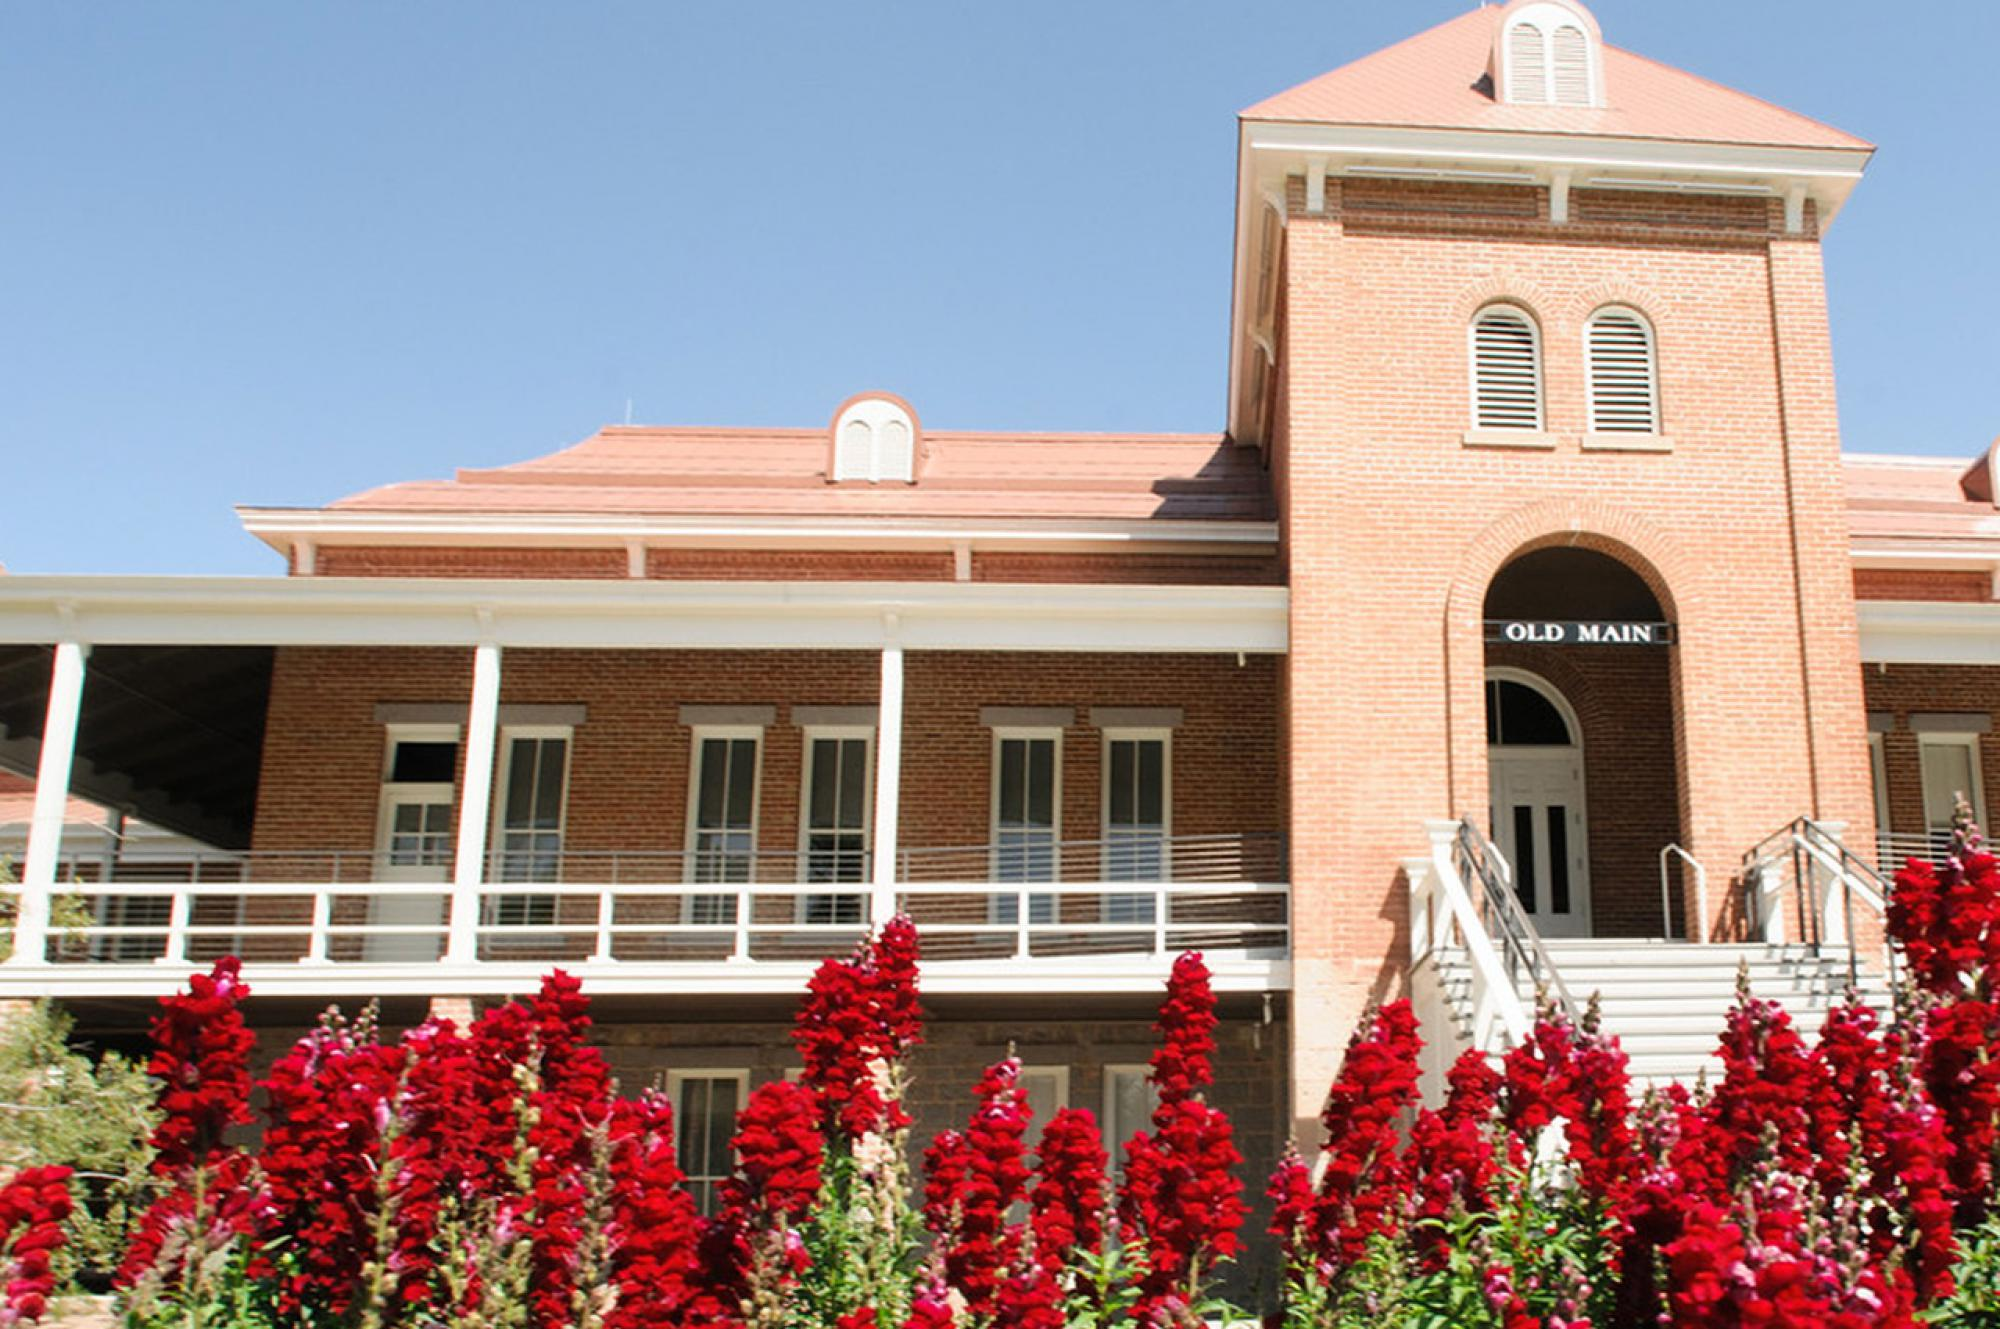 view of Old Main with blooming flowers, University of Arizona